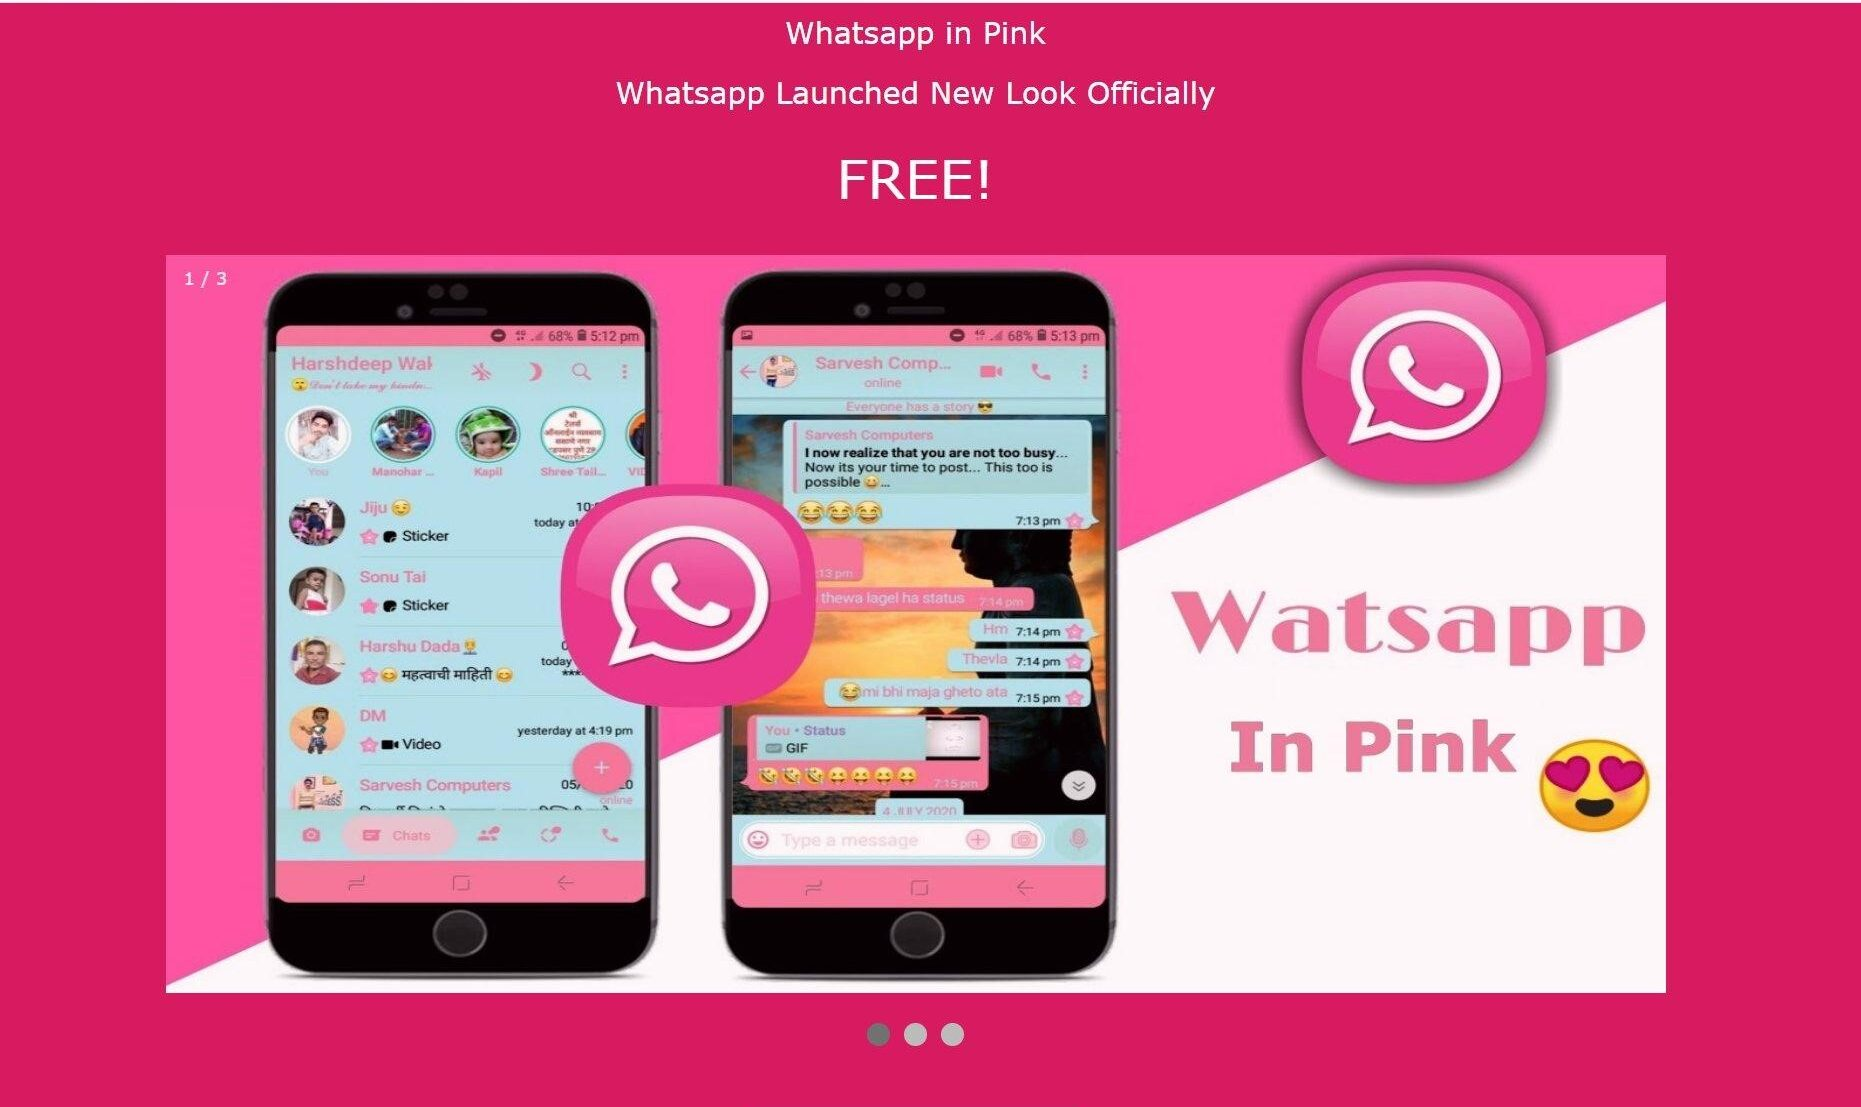 PINK WHATSAPP?